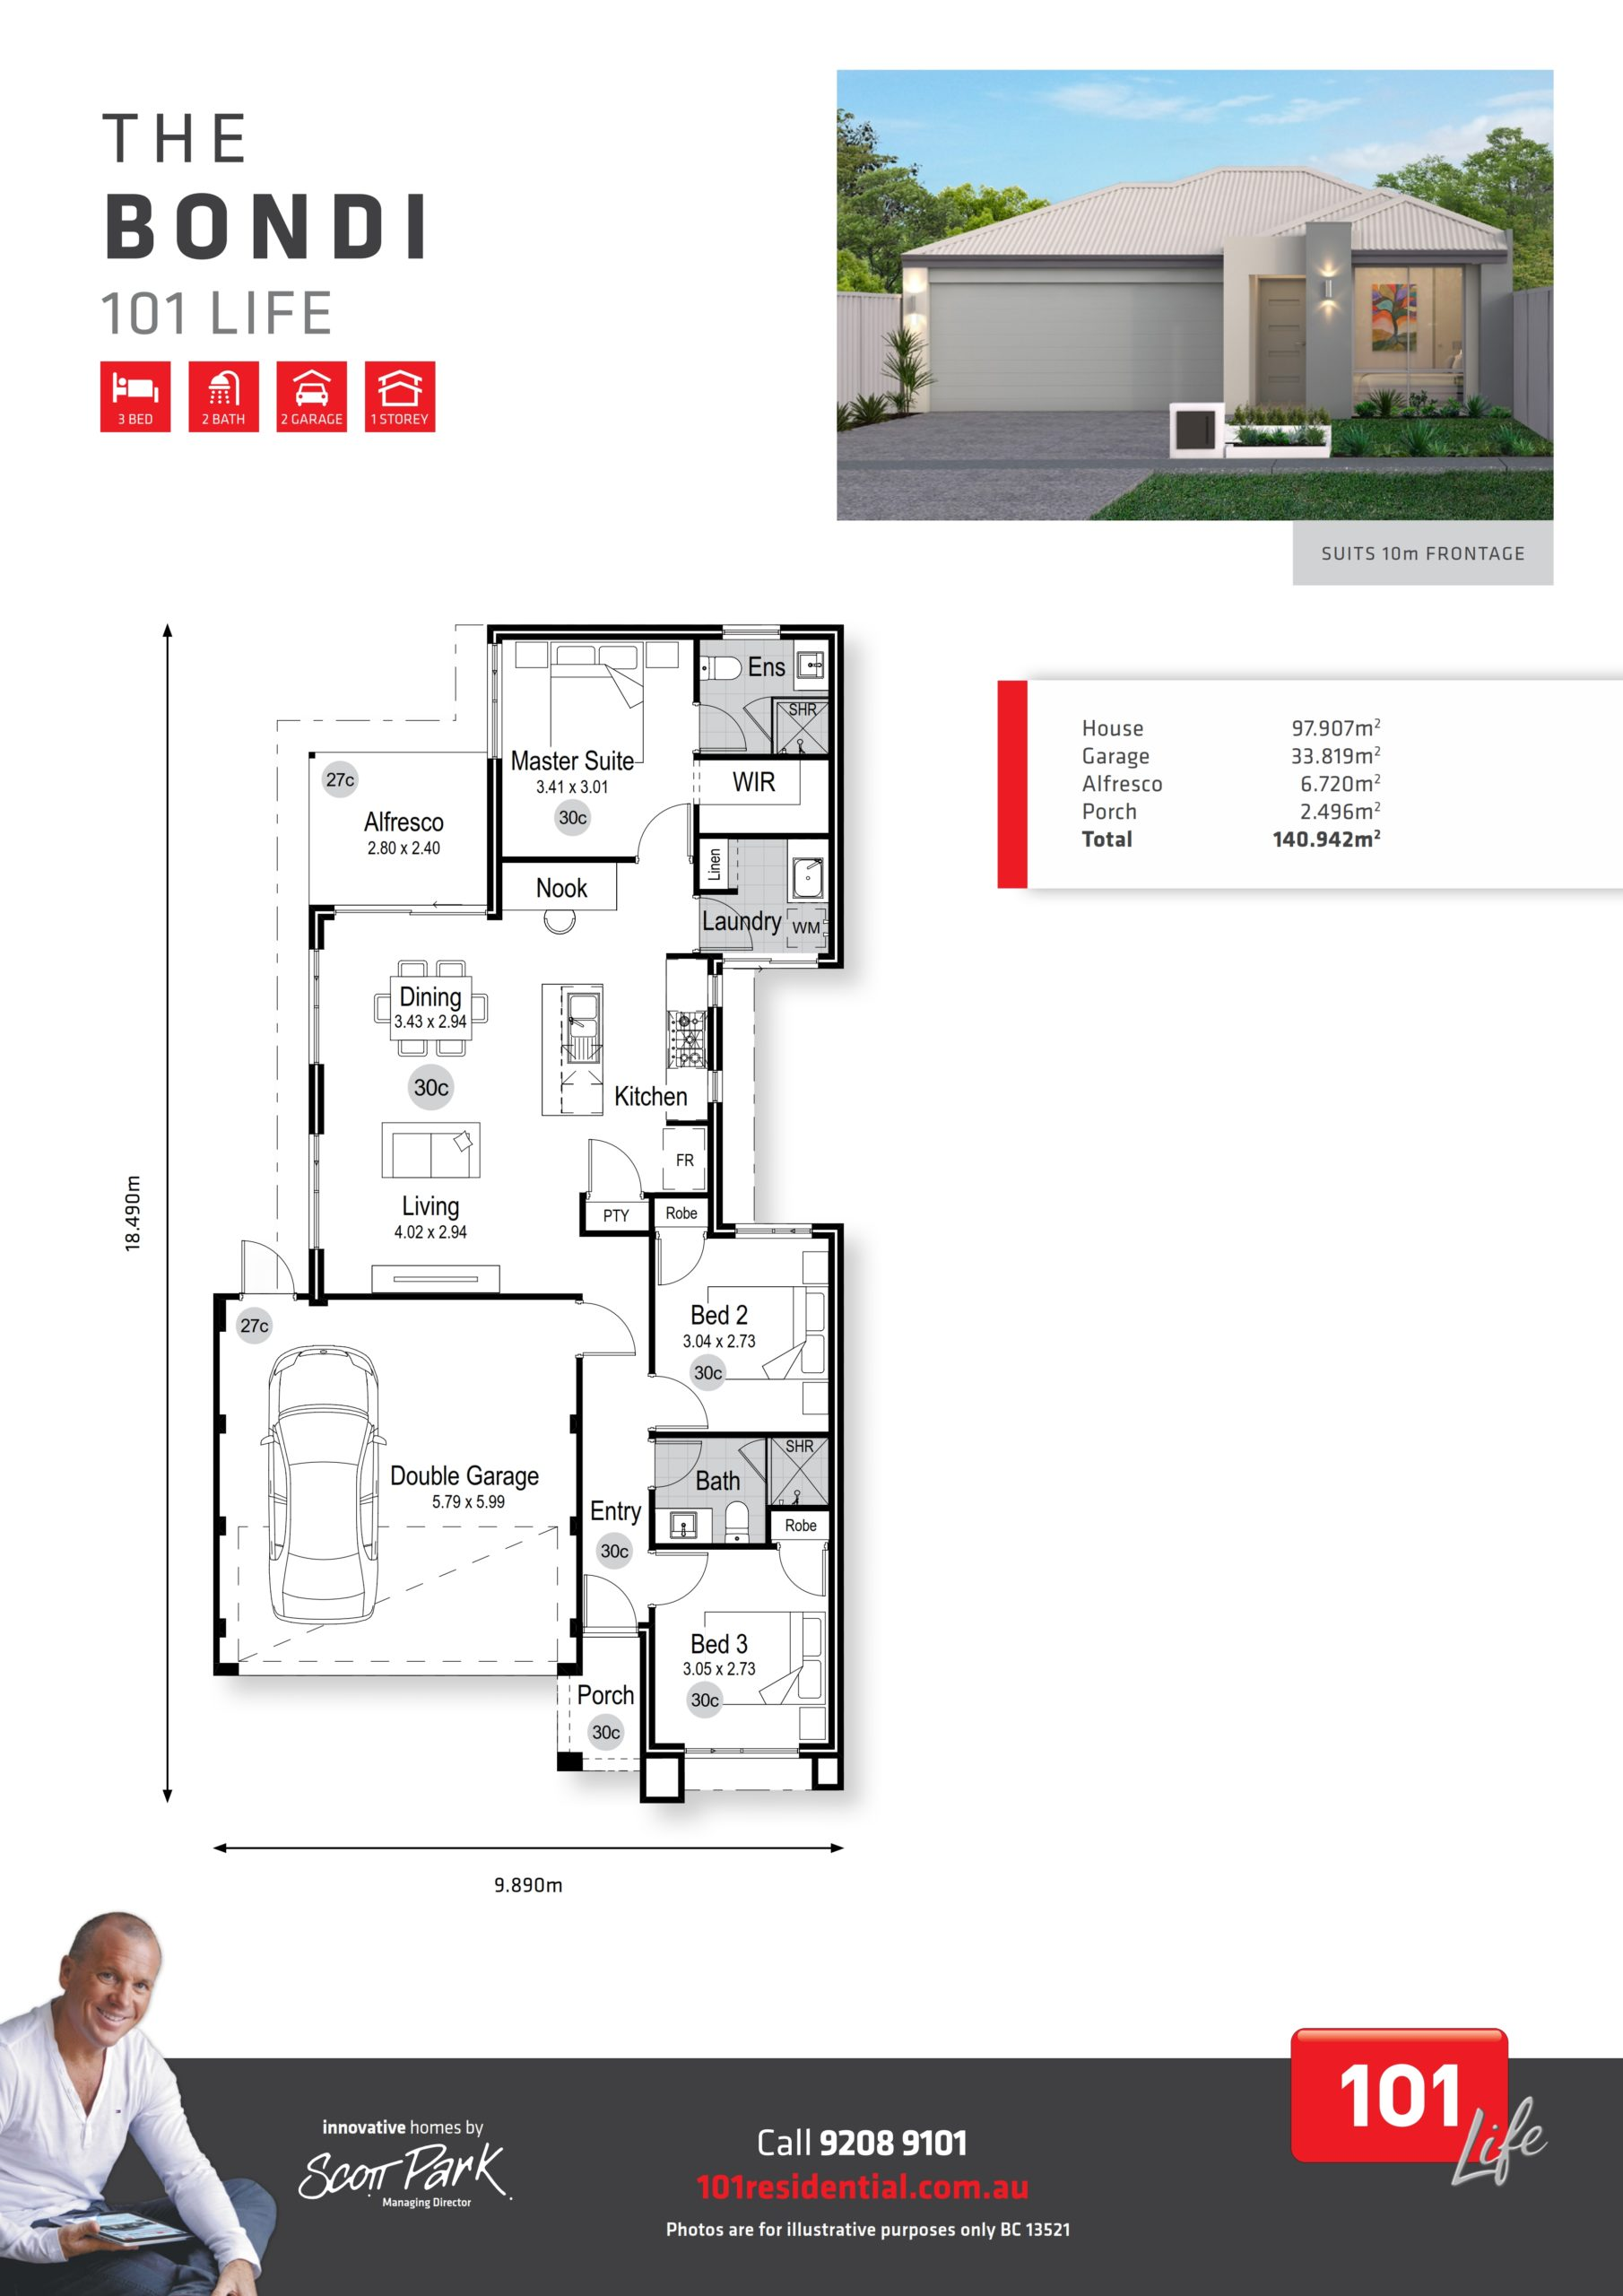 101 Life A3 Floor Plan - Bondi WEB_001